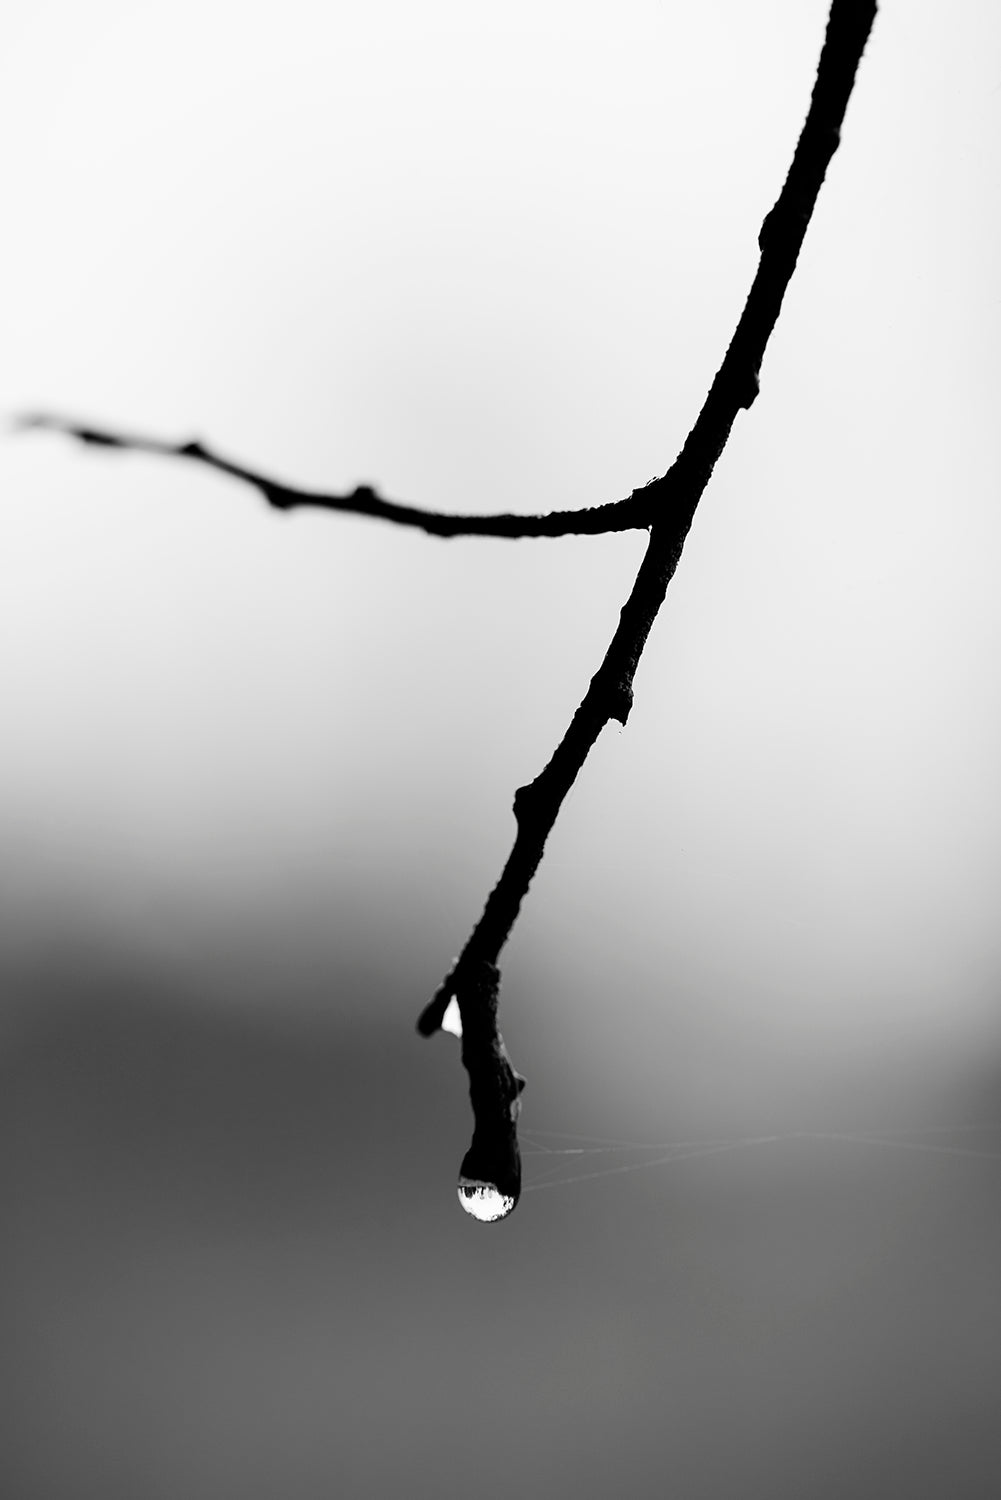 Tree Branch with Rain Drop. Black and White Landscape Photograph. Buy a print.